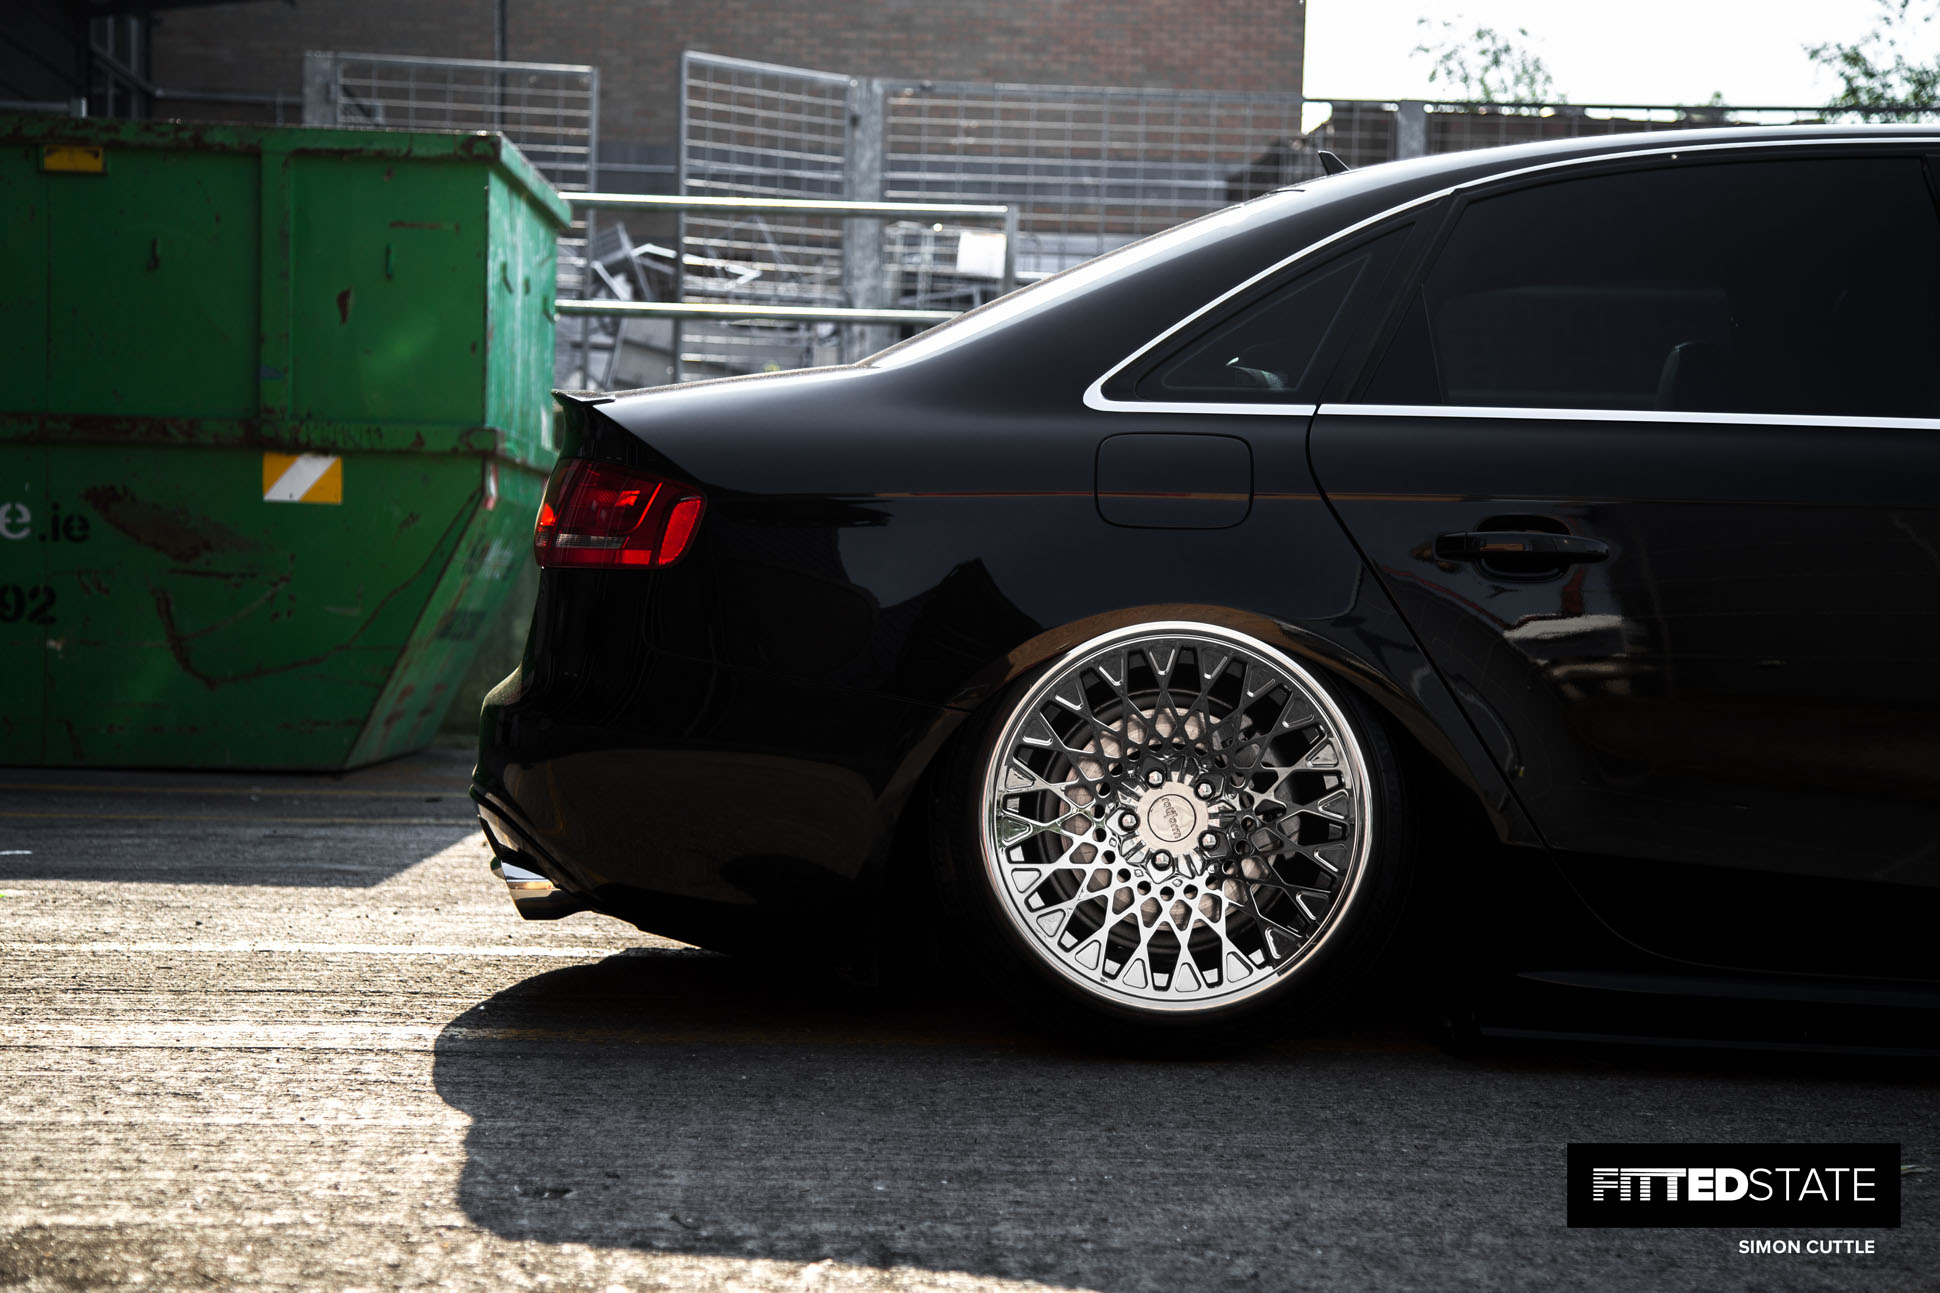 Stephen McKenna's Audi B8 A4 - Fitted State